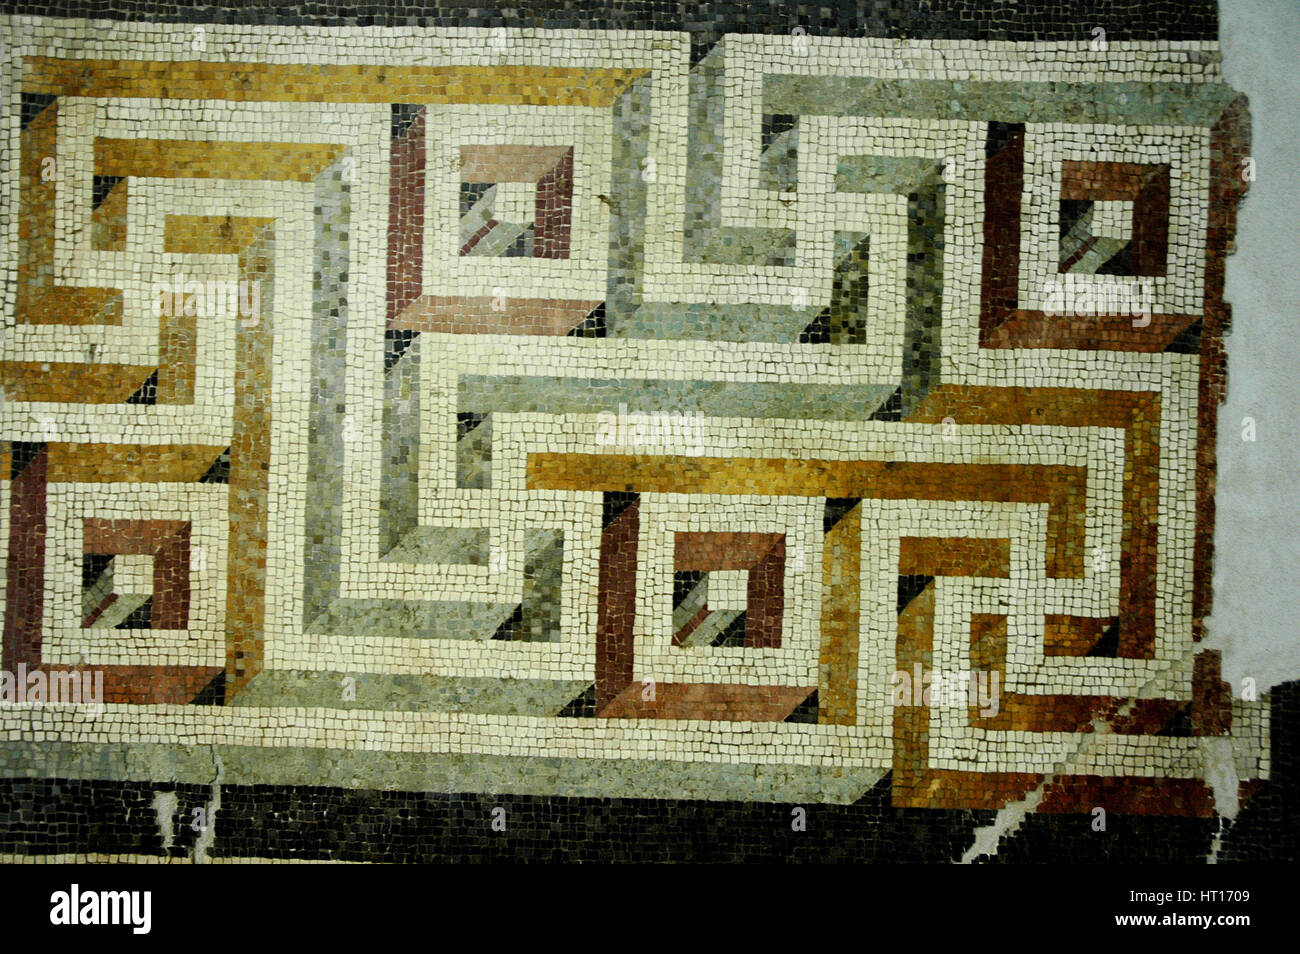 Geometric mosaic floor.  Culture: Roman.   Place of Origin: Rome. Credit Line: Werner Forman Archive Artist: Werner - Stock Image